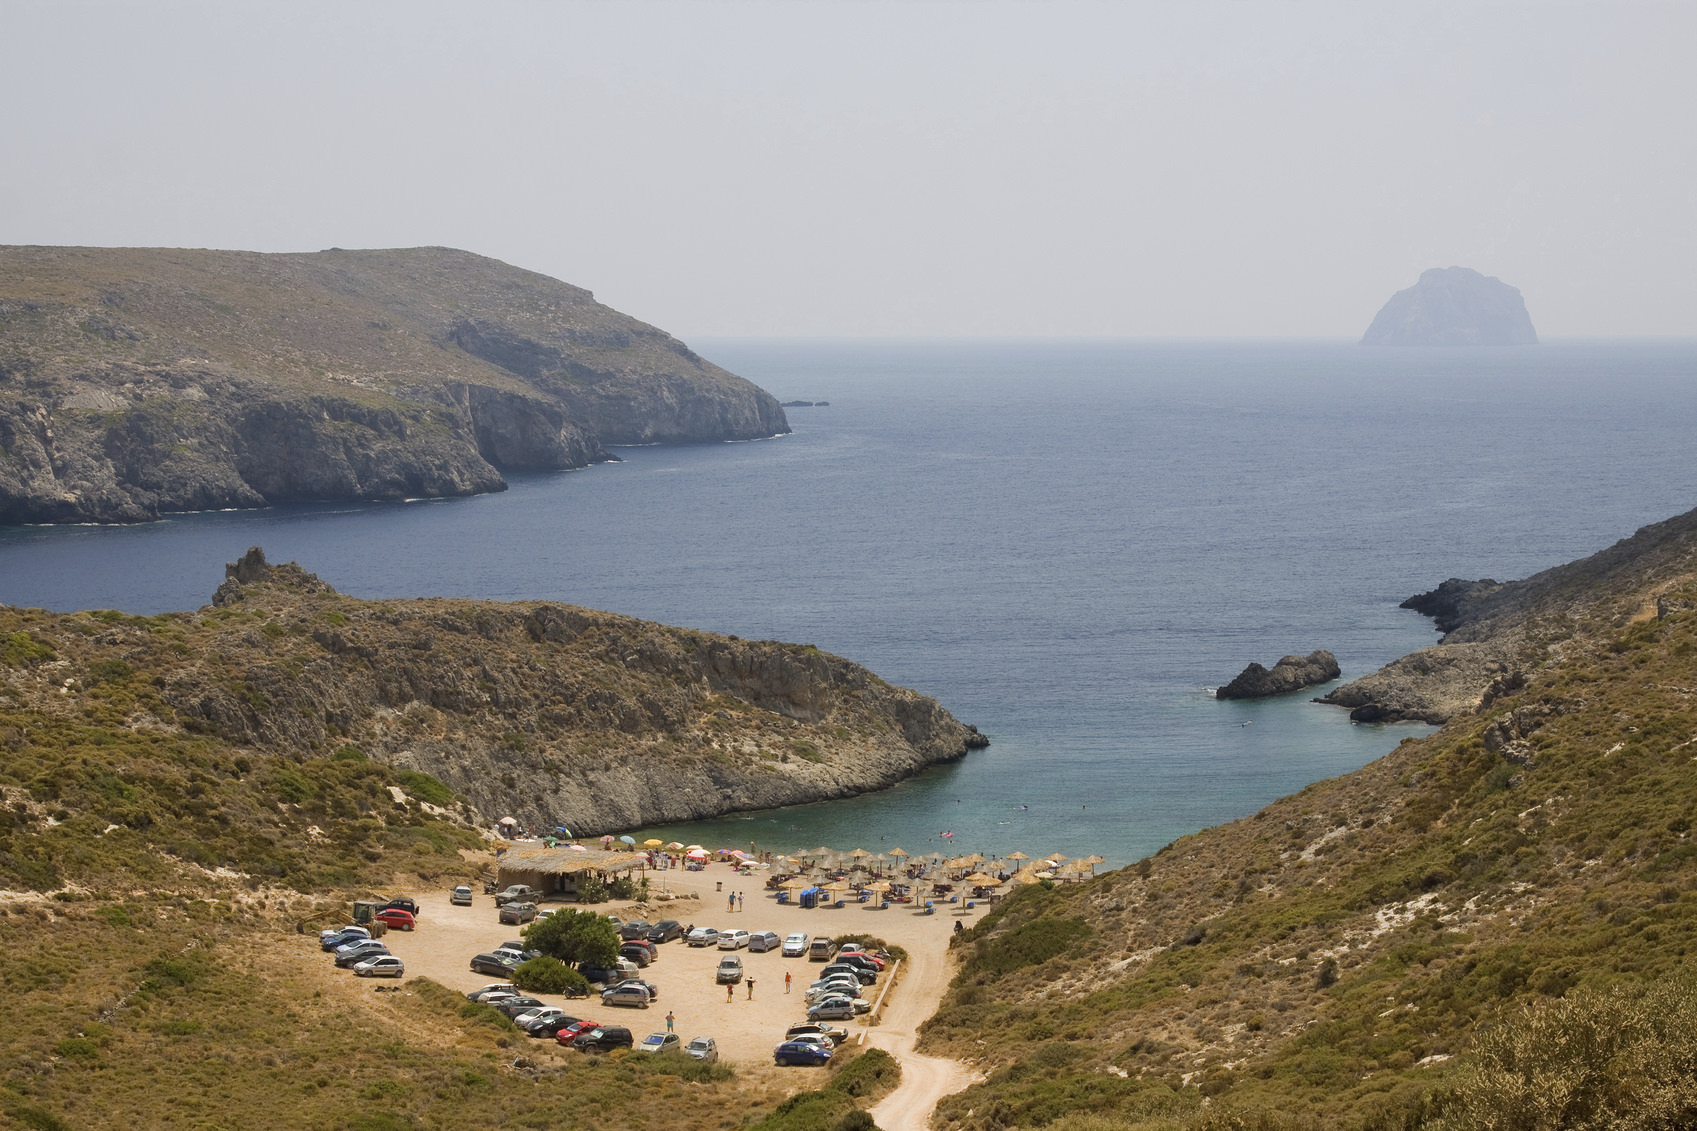 The picturesque beach of Chalkos, on the southern part of Kithira island, Greece